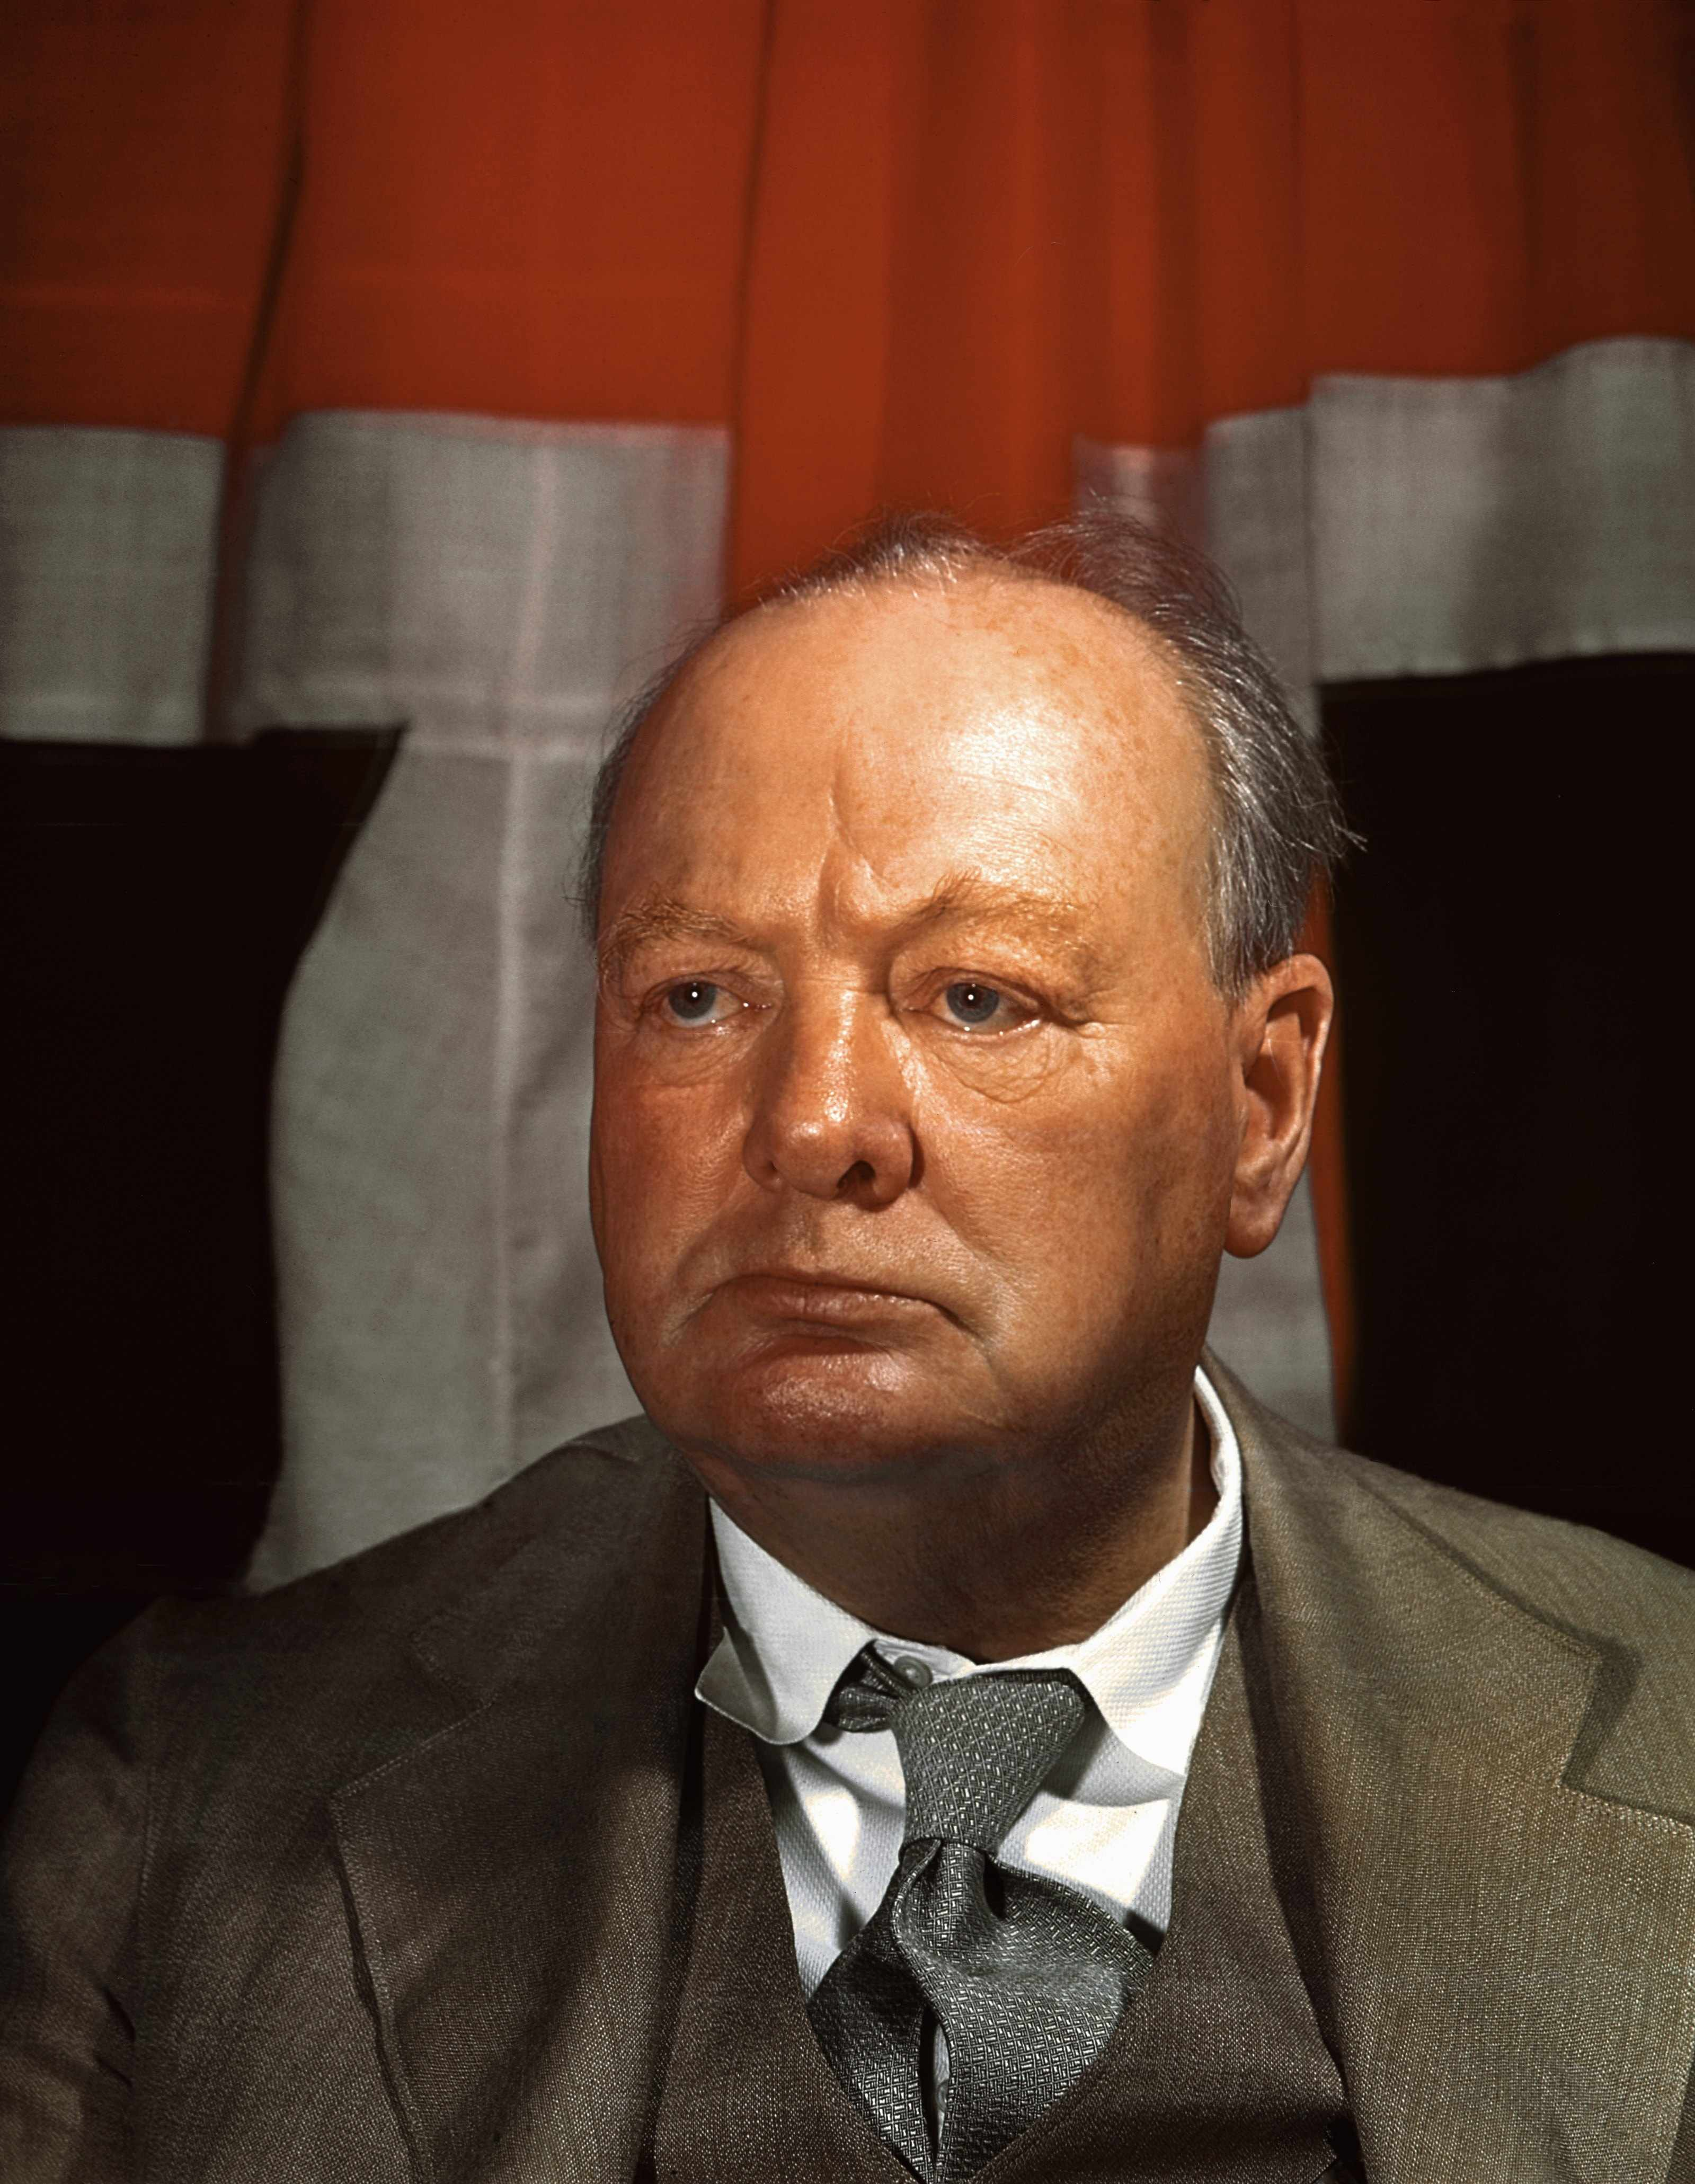 A portrait of Winston Churchill